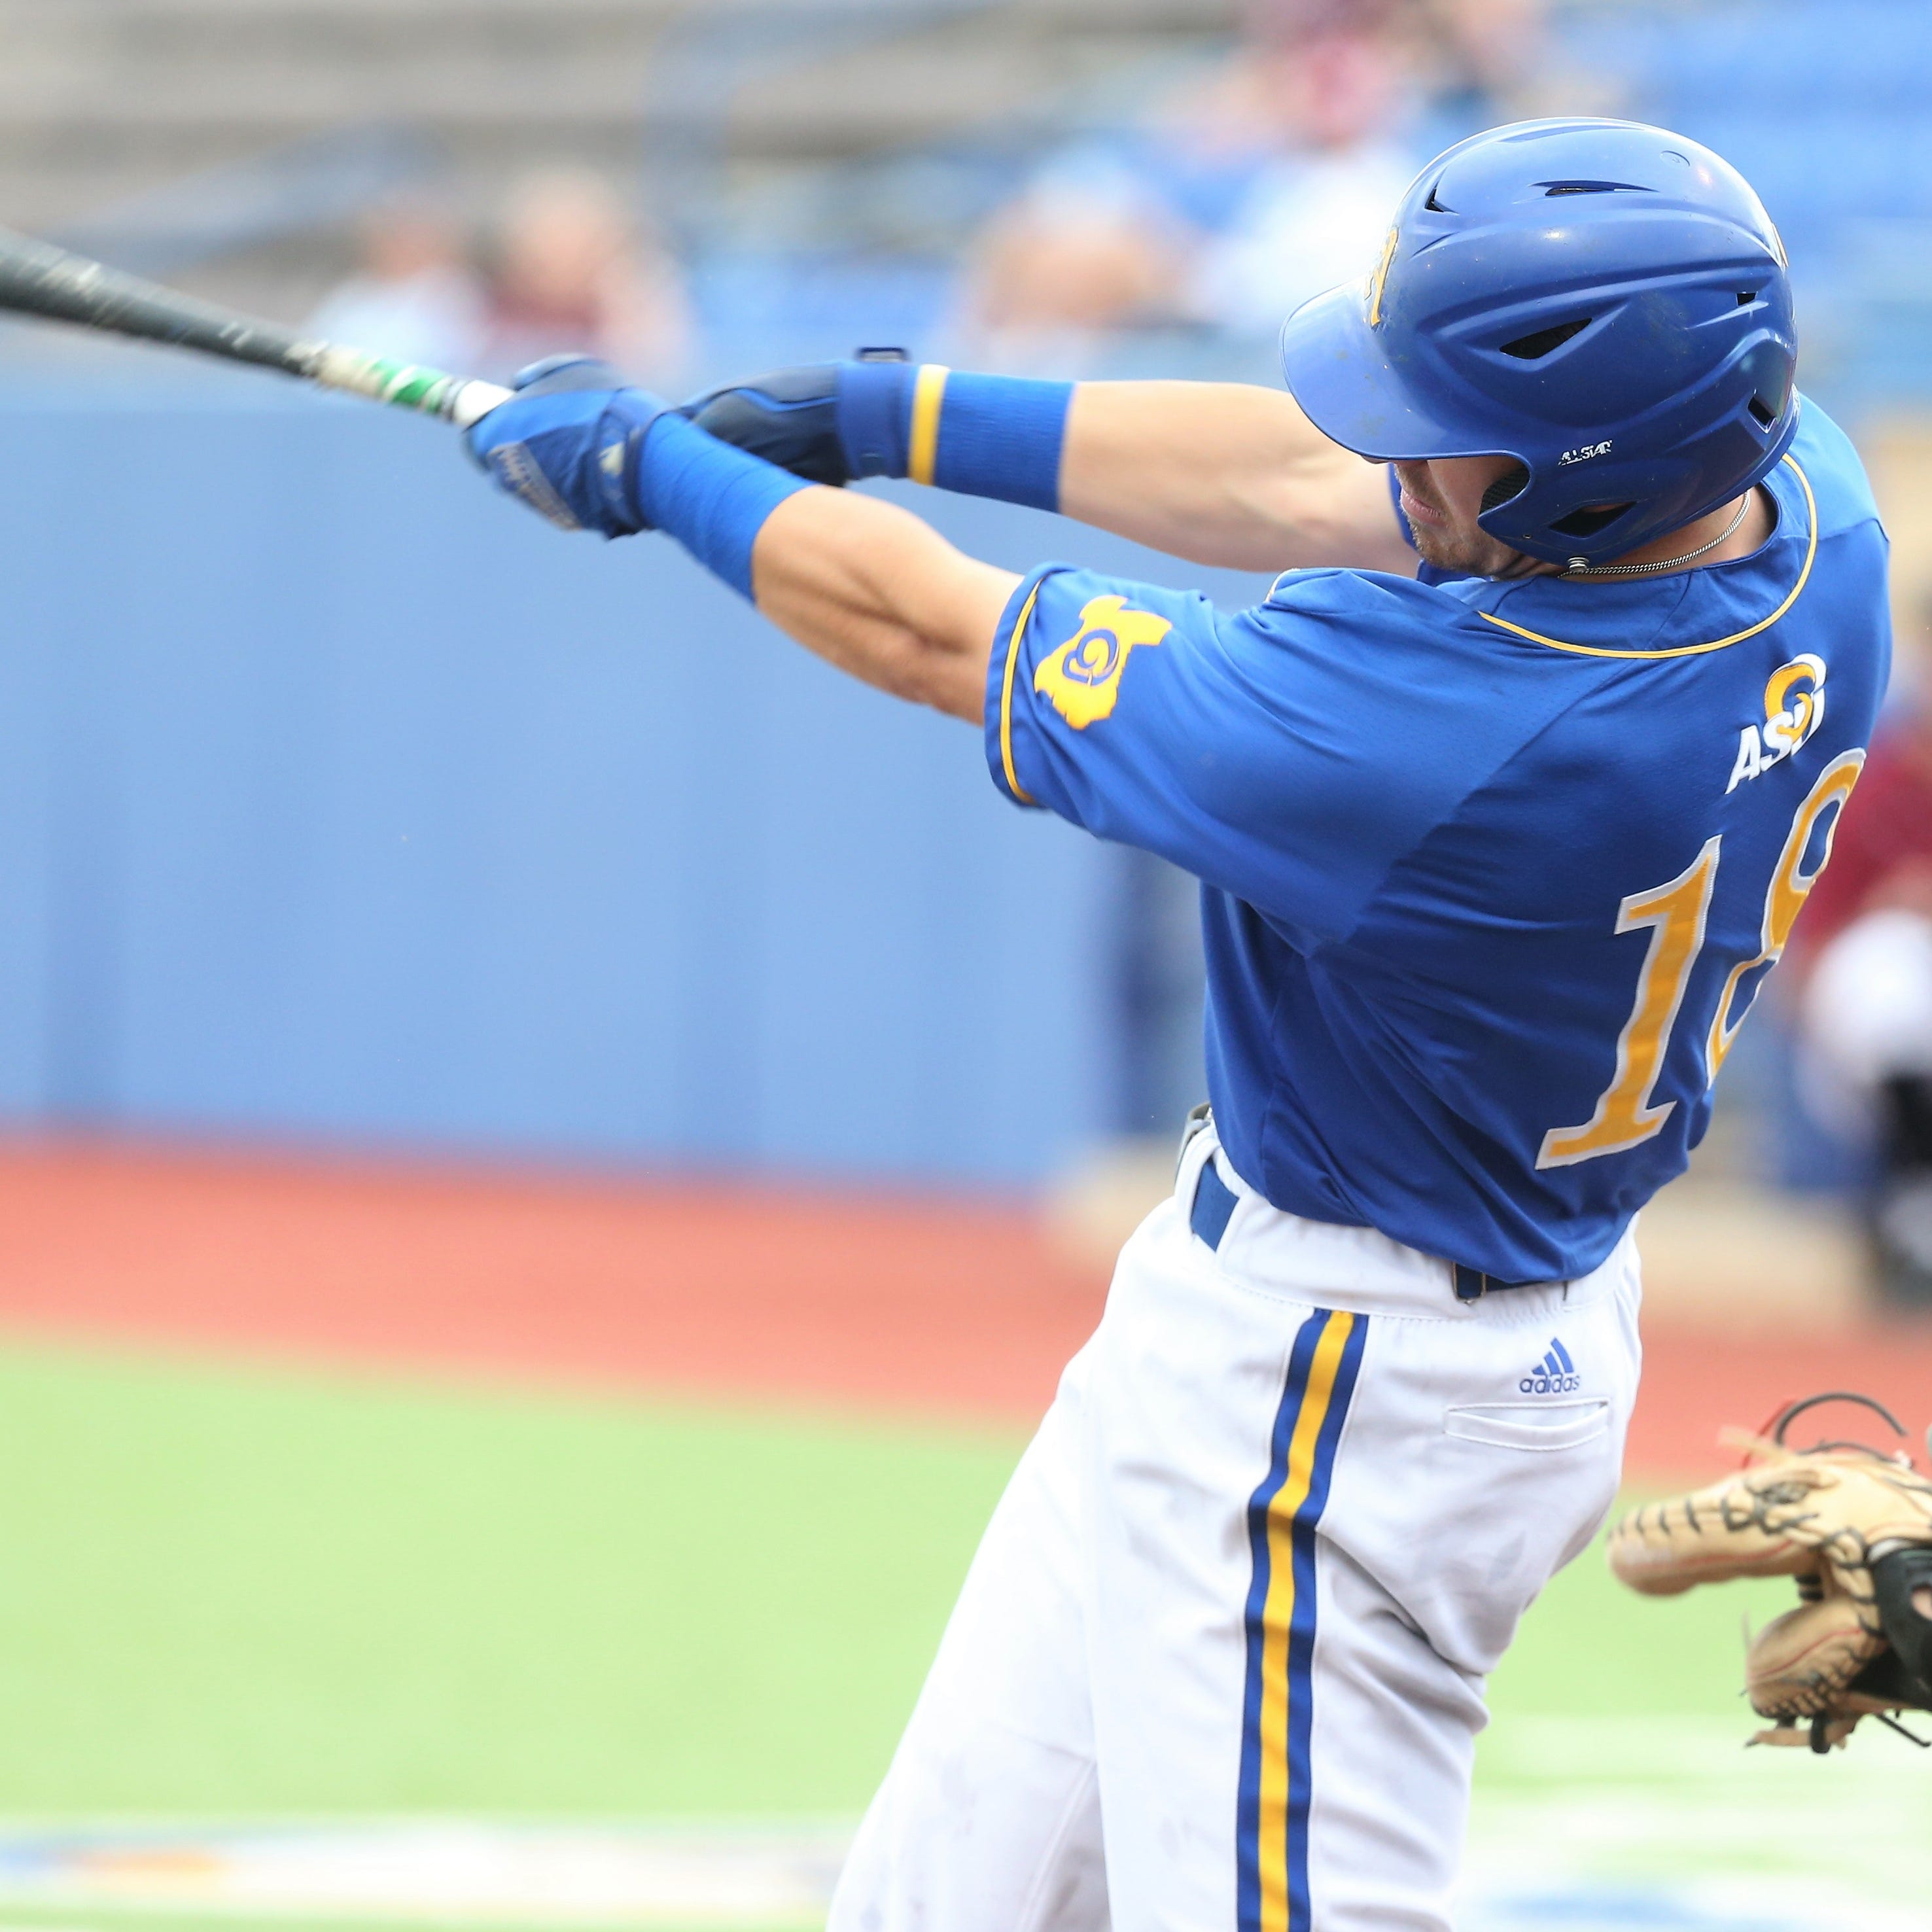 Angelo State baseball gets within a whisker of College World Series